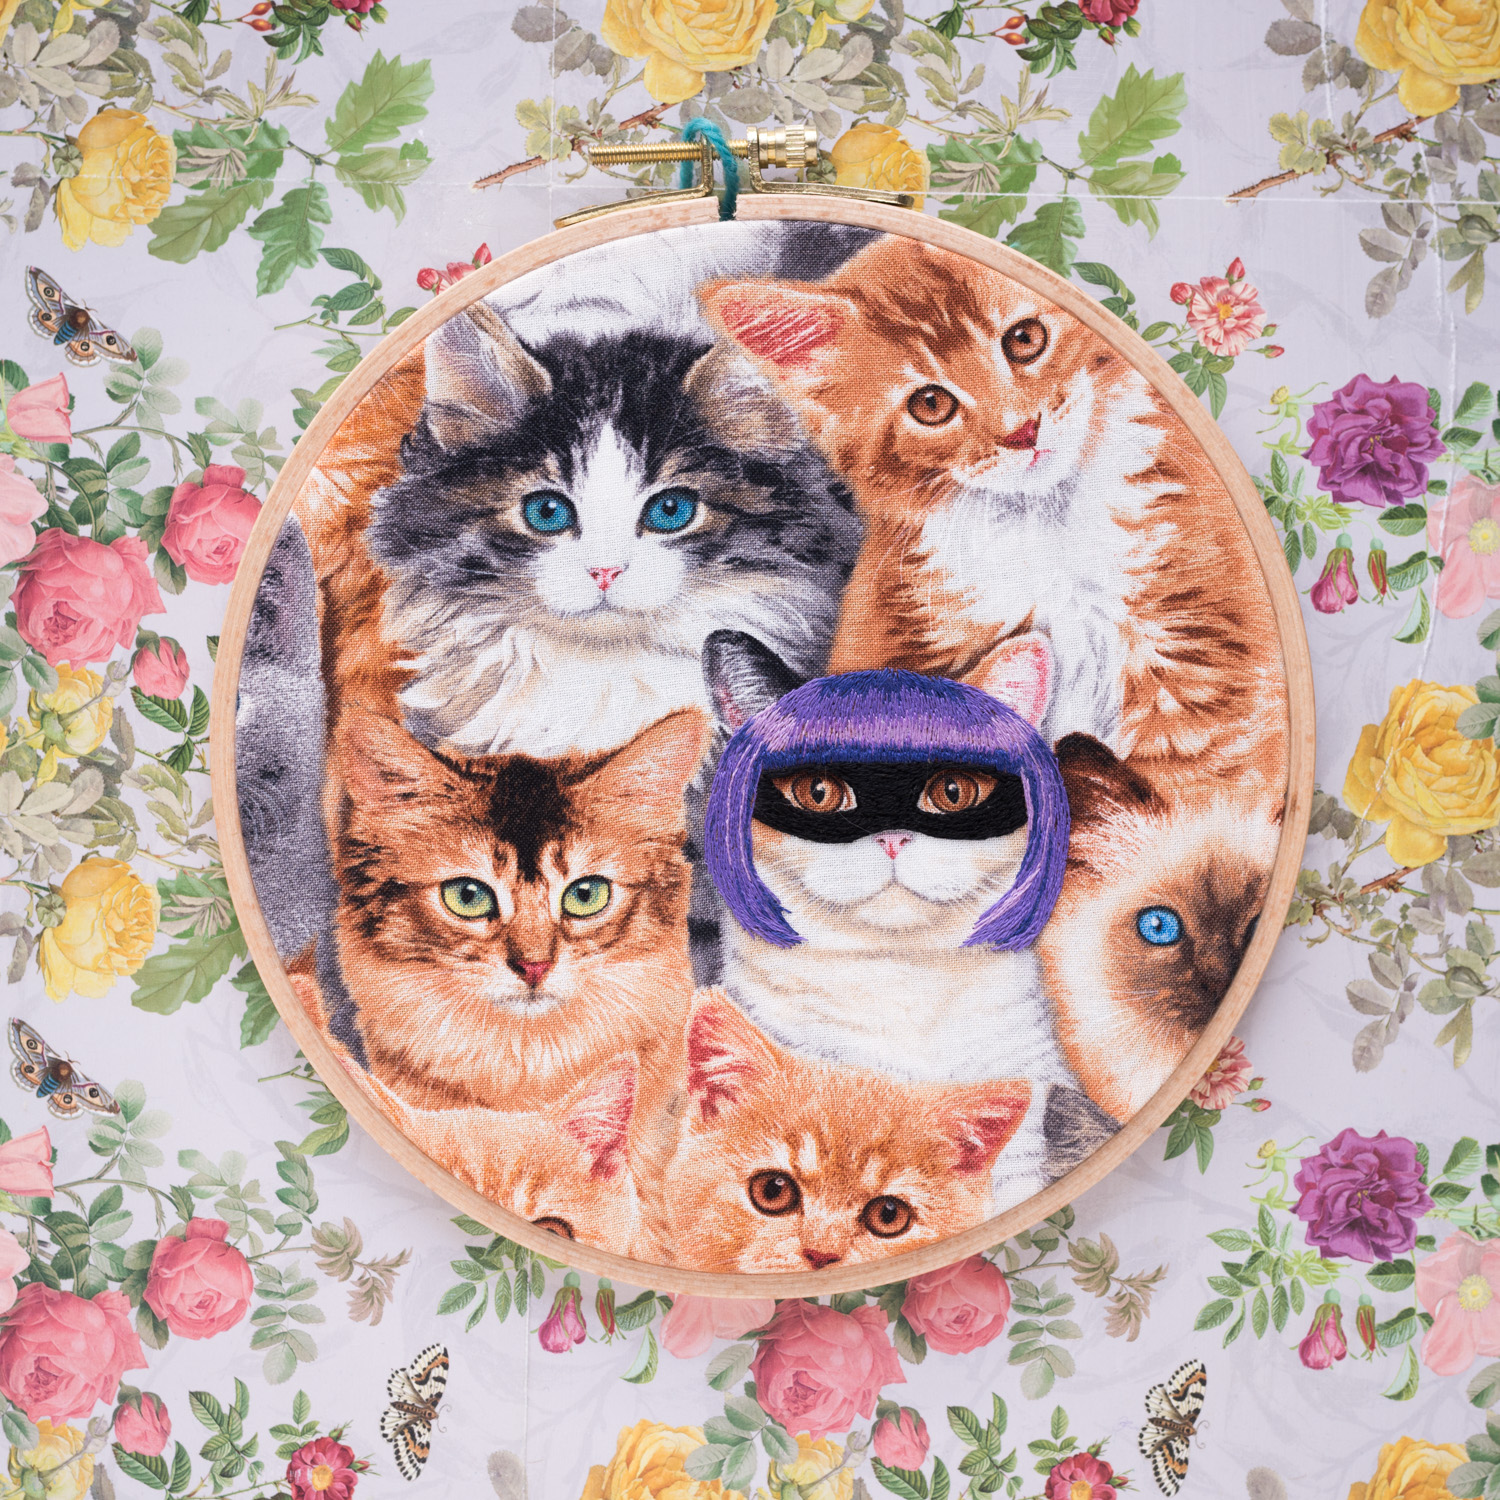 Cat embroidered as BadAss Girl